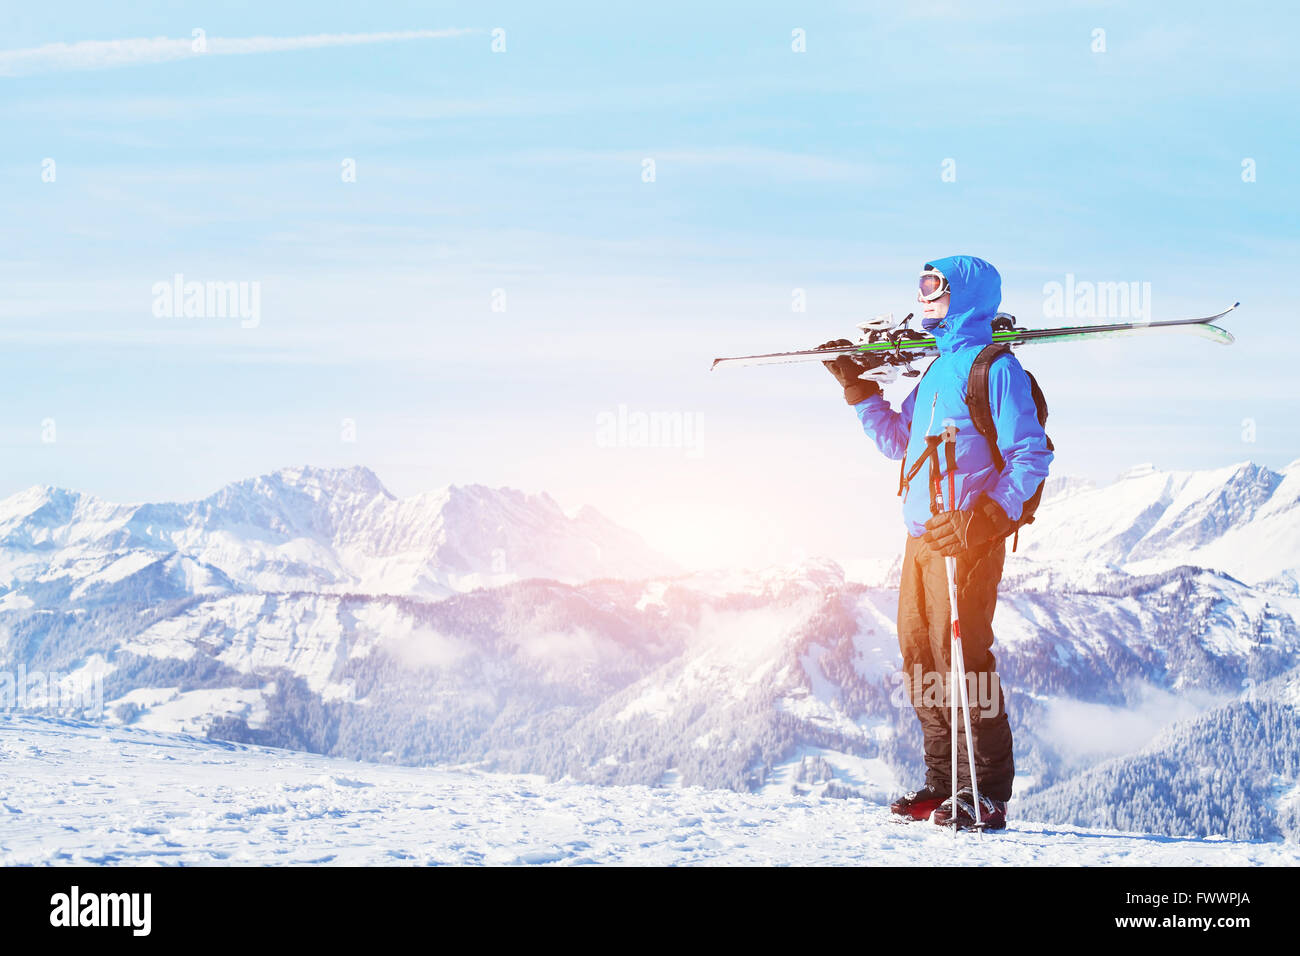 winter holidays, skiing off piste in the mountains, beautiful background - Stock Image